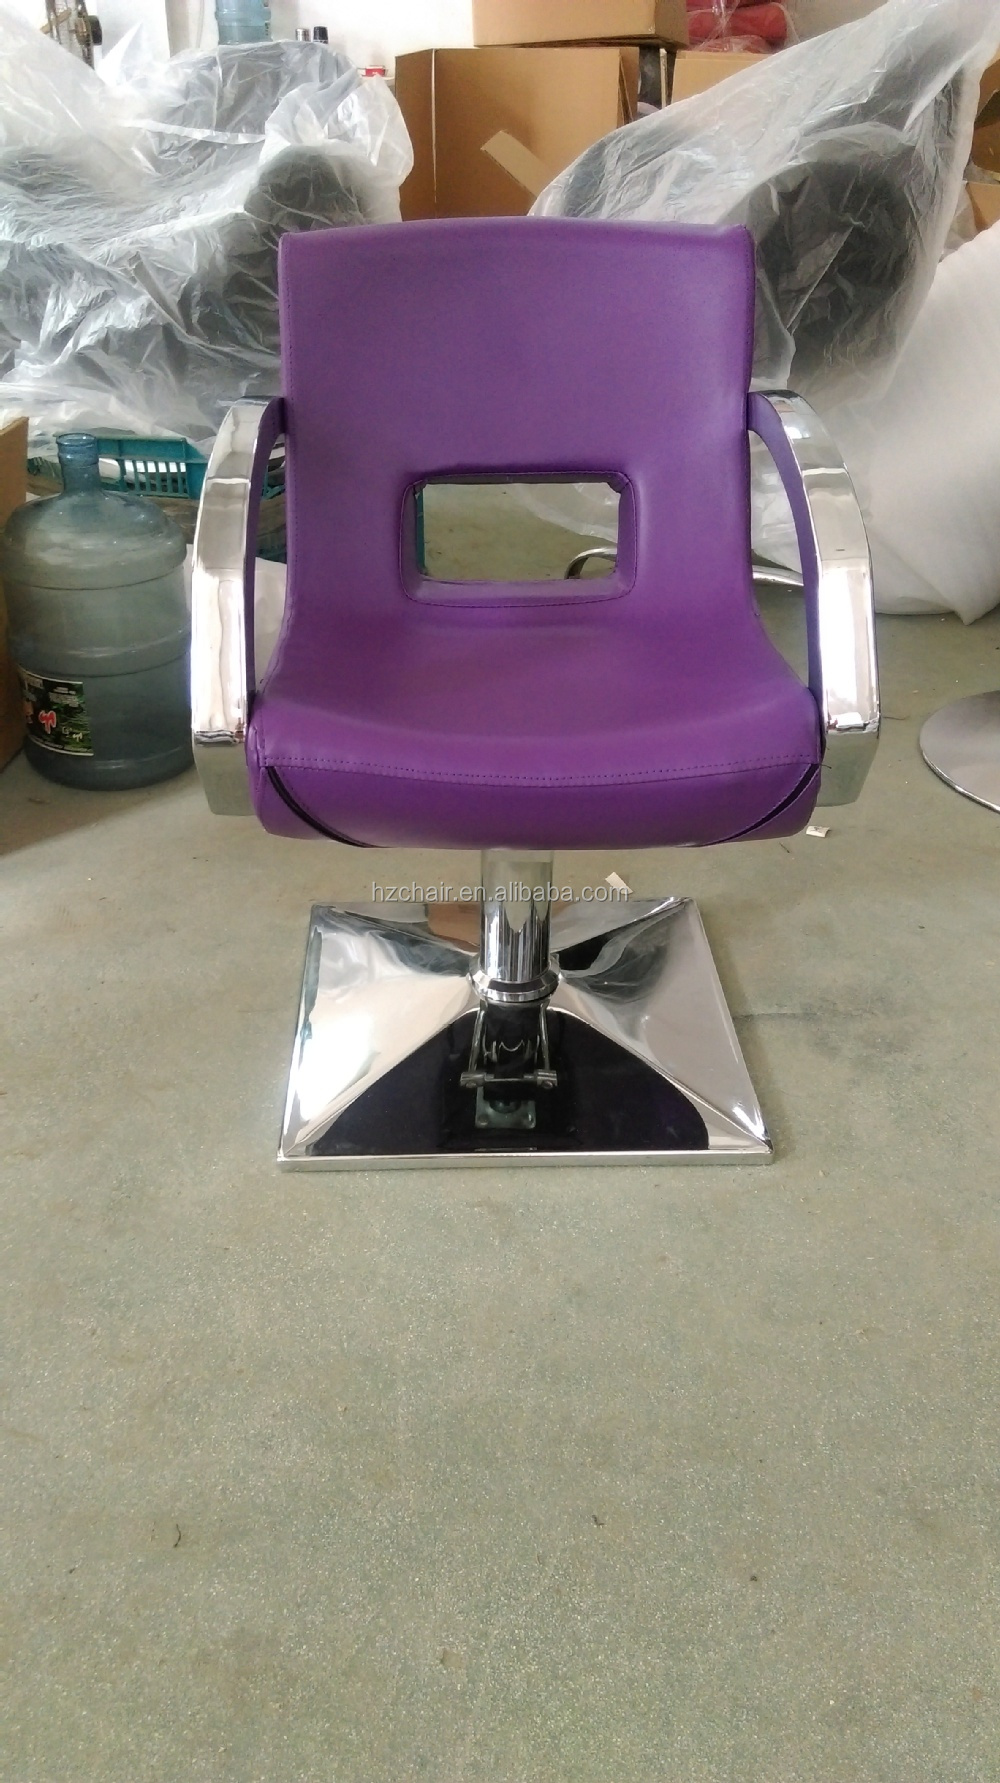 Wholesale 2015 purple hair dryer chairs with shape sponge used salon barber chairs sale cheap - Used salon furniture for sale ...